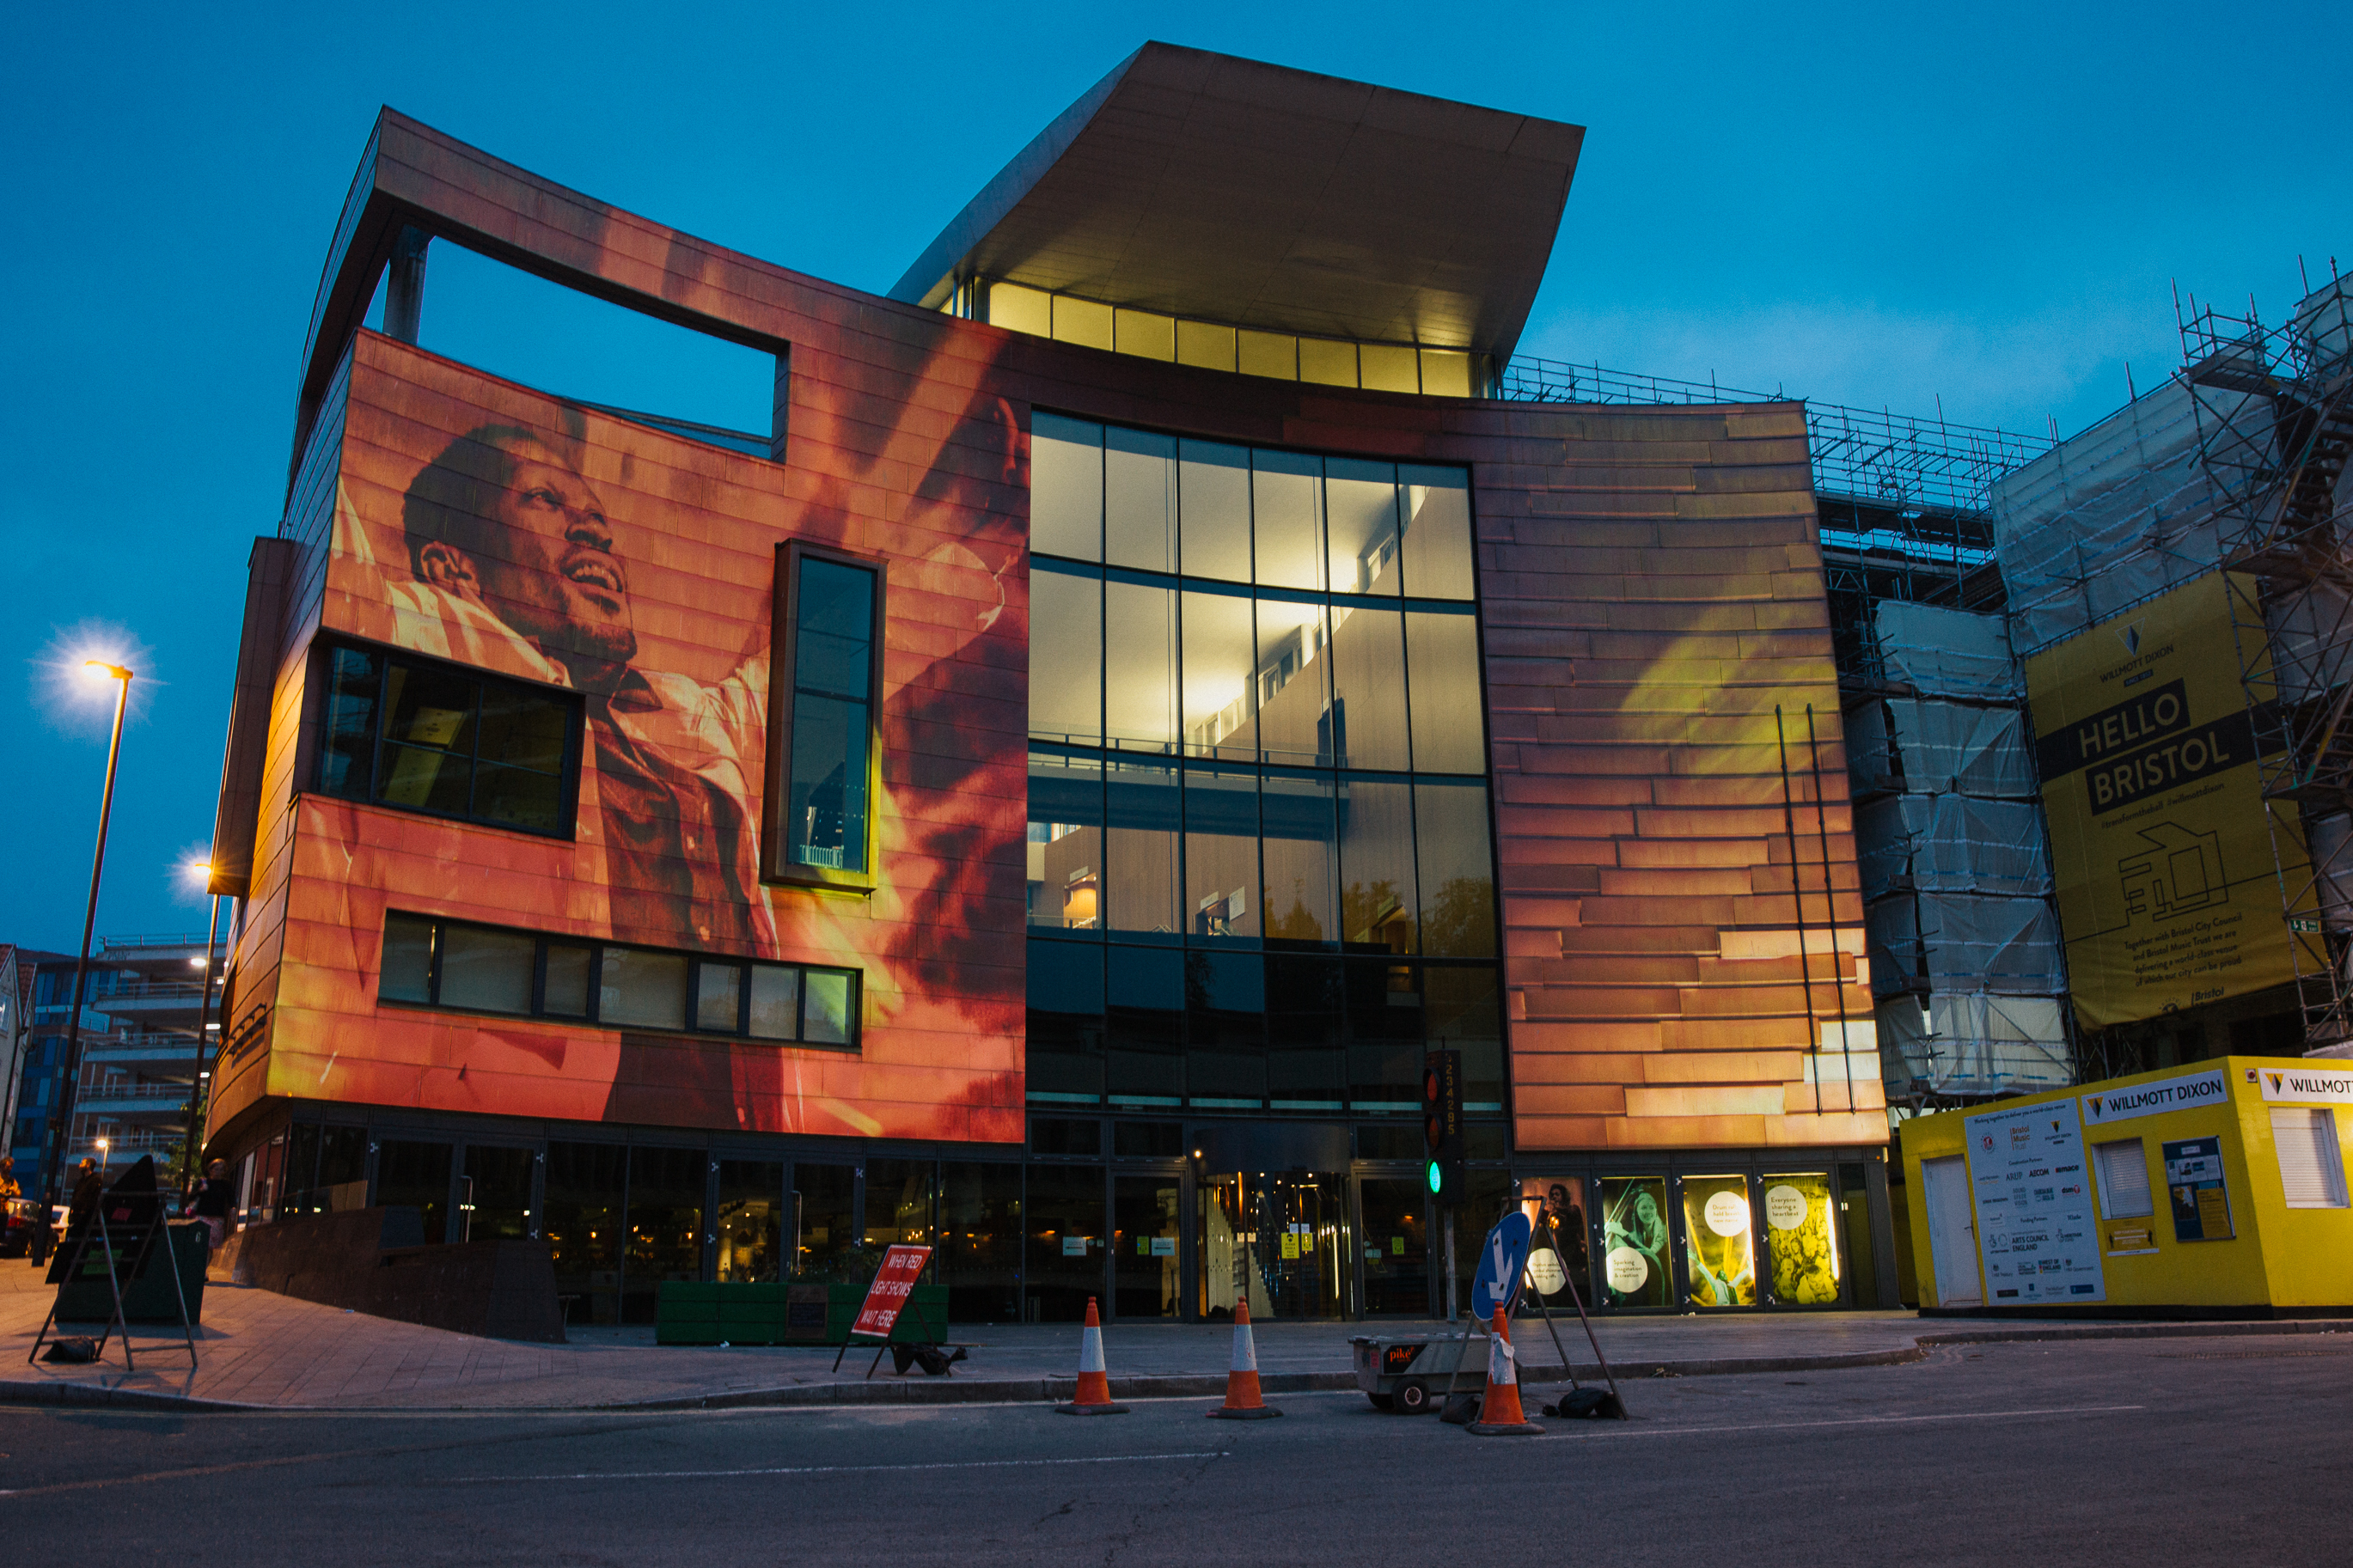 Colston Hall Officially Renamed Bristol Beacon After Three-Year Campaign